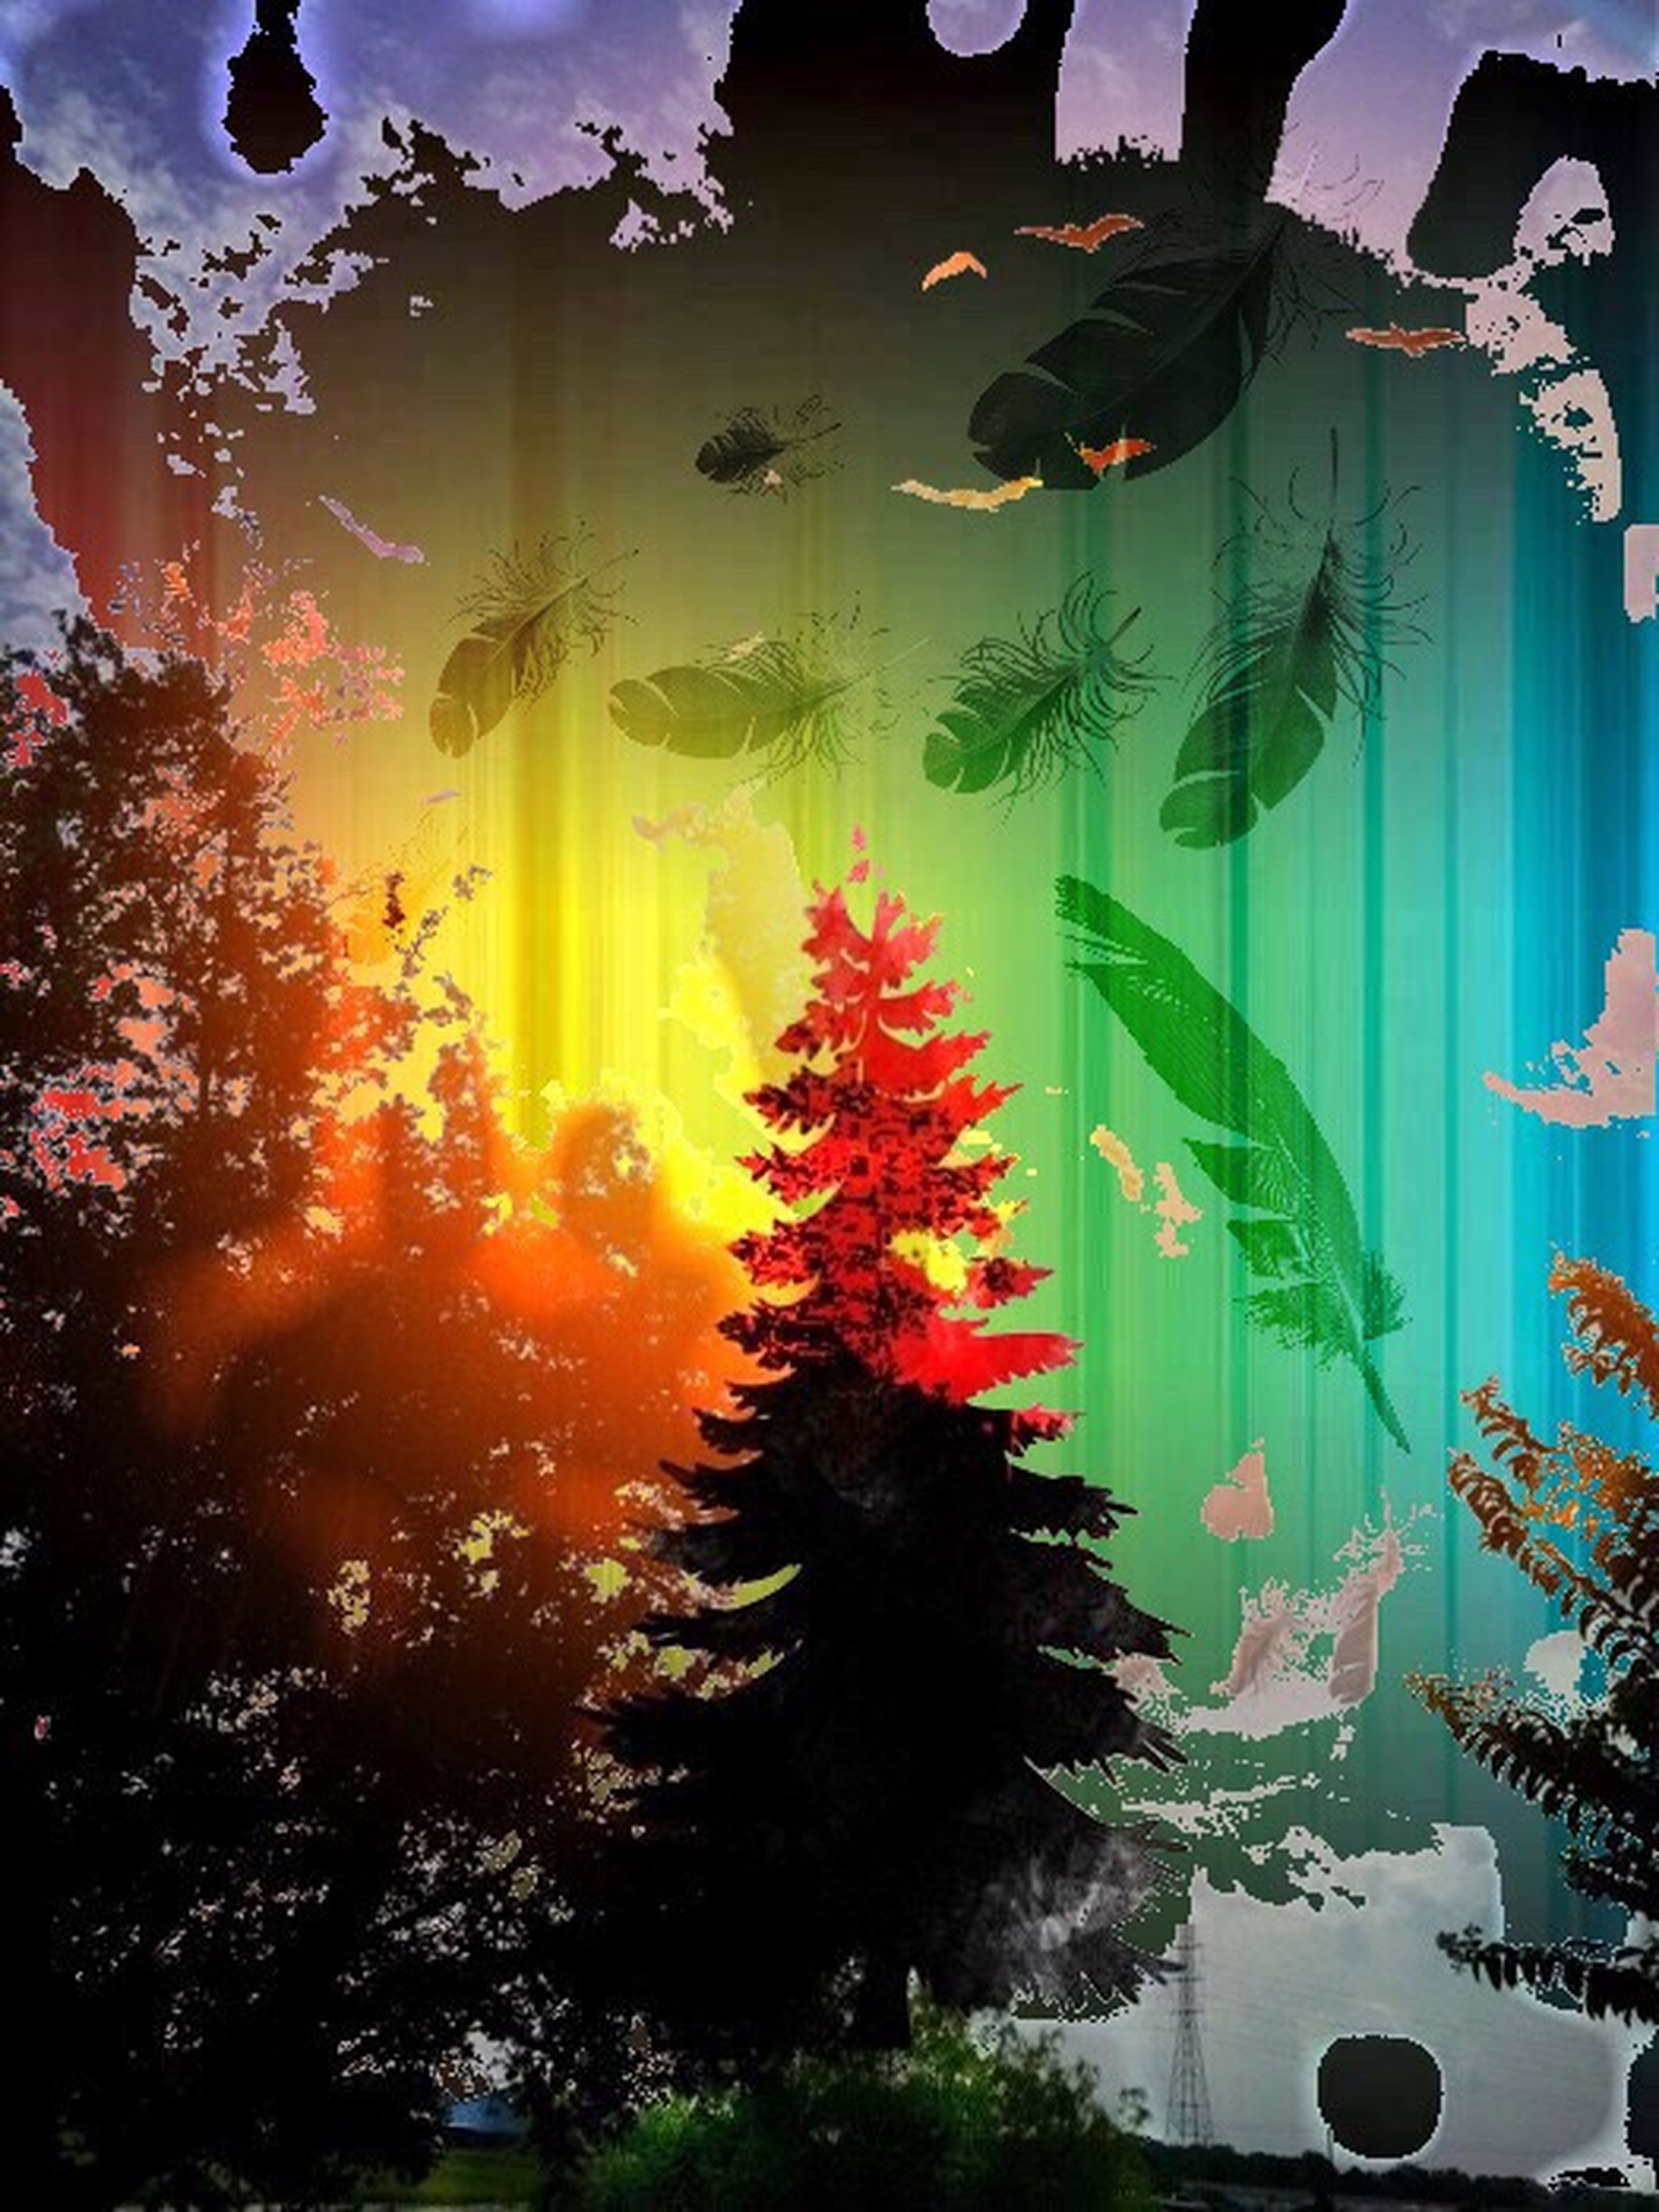 indoors, orange color, tree, multi colored, plant, water, nature, growth, transparent, celebration, lifestyles, reflection, beauty in nature, sunset, illuminated, glass - material, flower